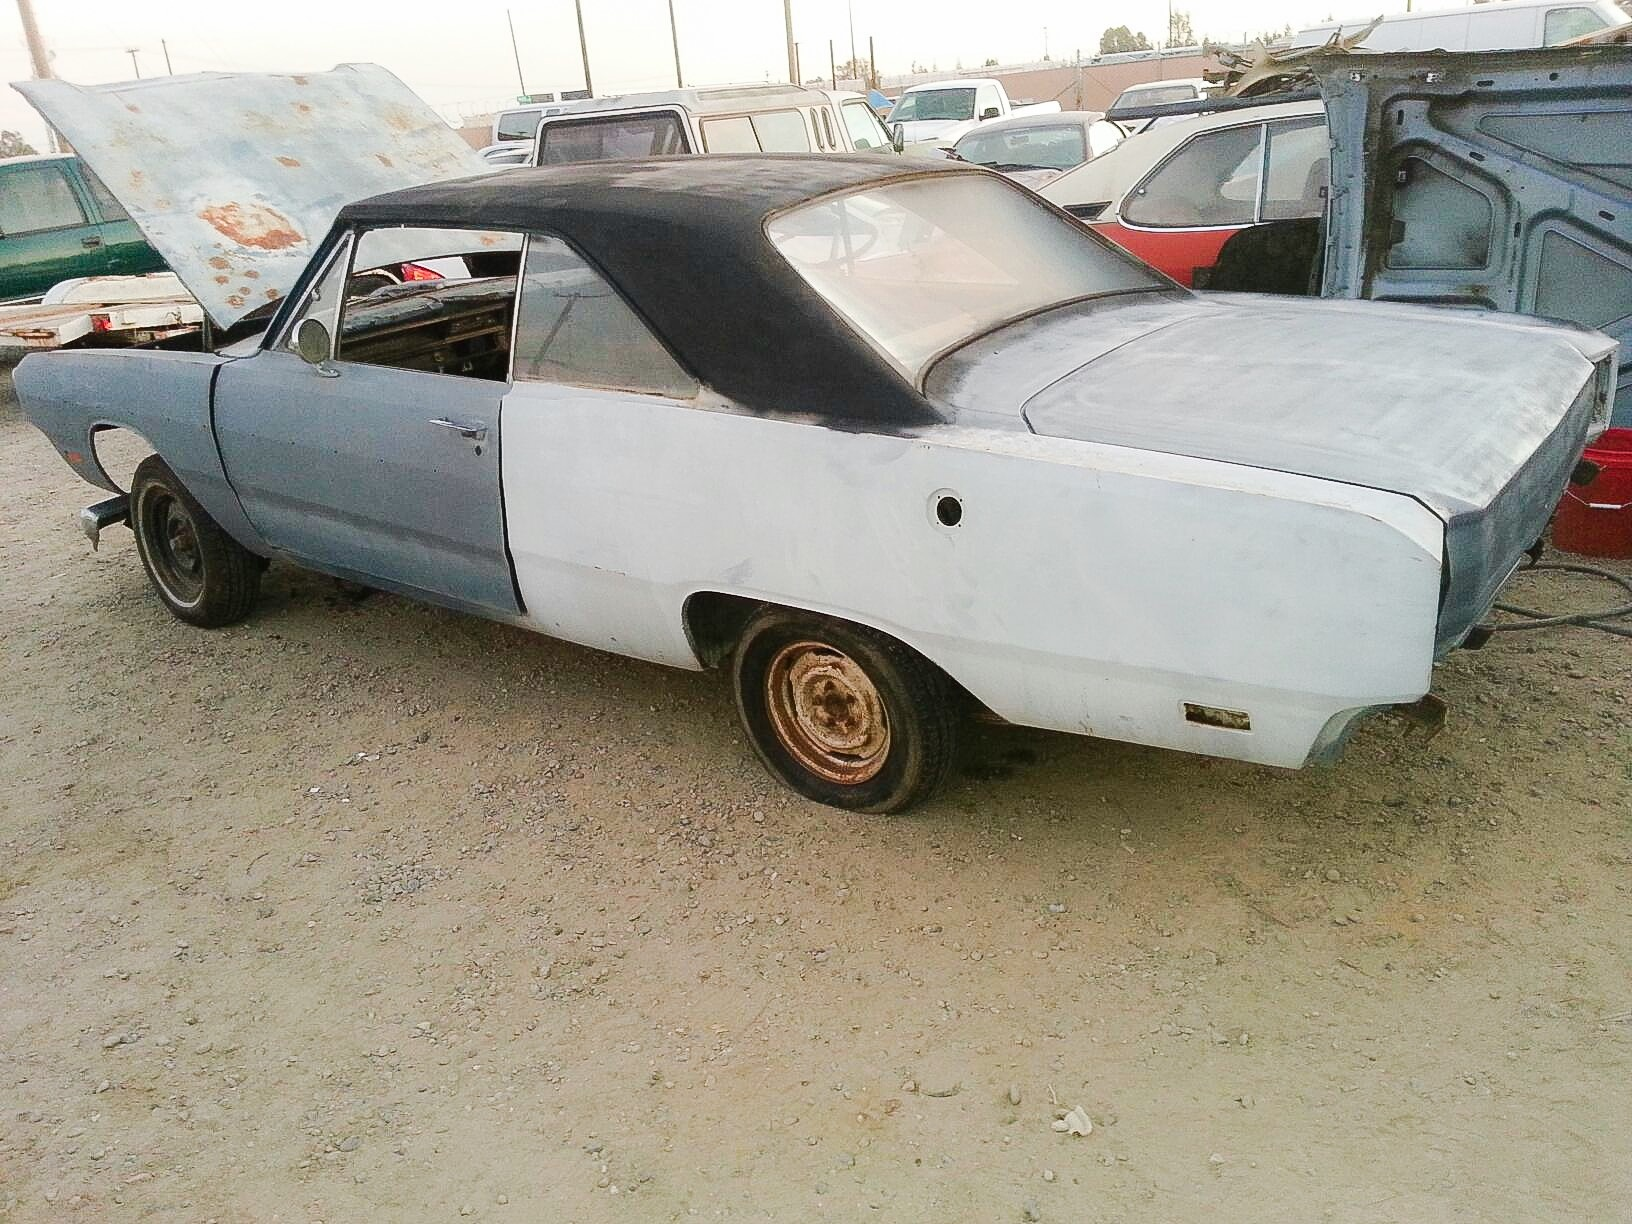 [SOLD] - 1969 Dodge Dart Project Car $1700